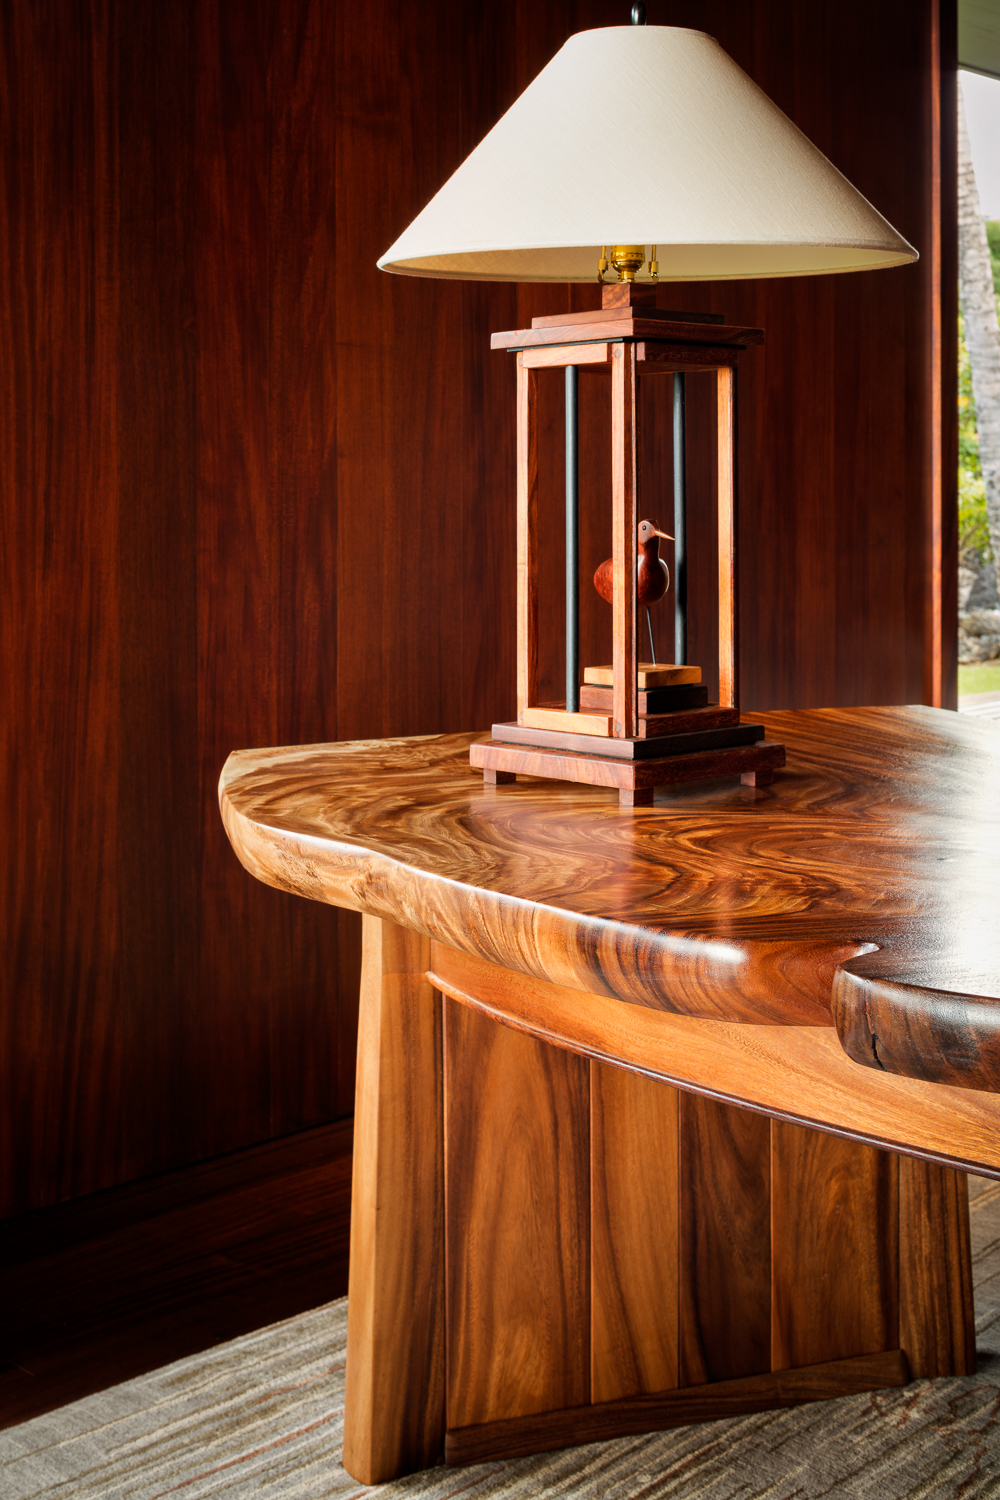 Custom Koa Desk photographed for Rhoady Lee Architecture + Design, by Ethan Tweedie Photography based in Austin Texas and Hawaii